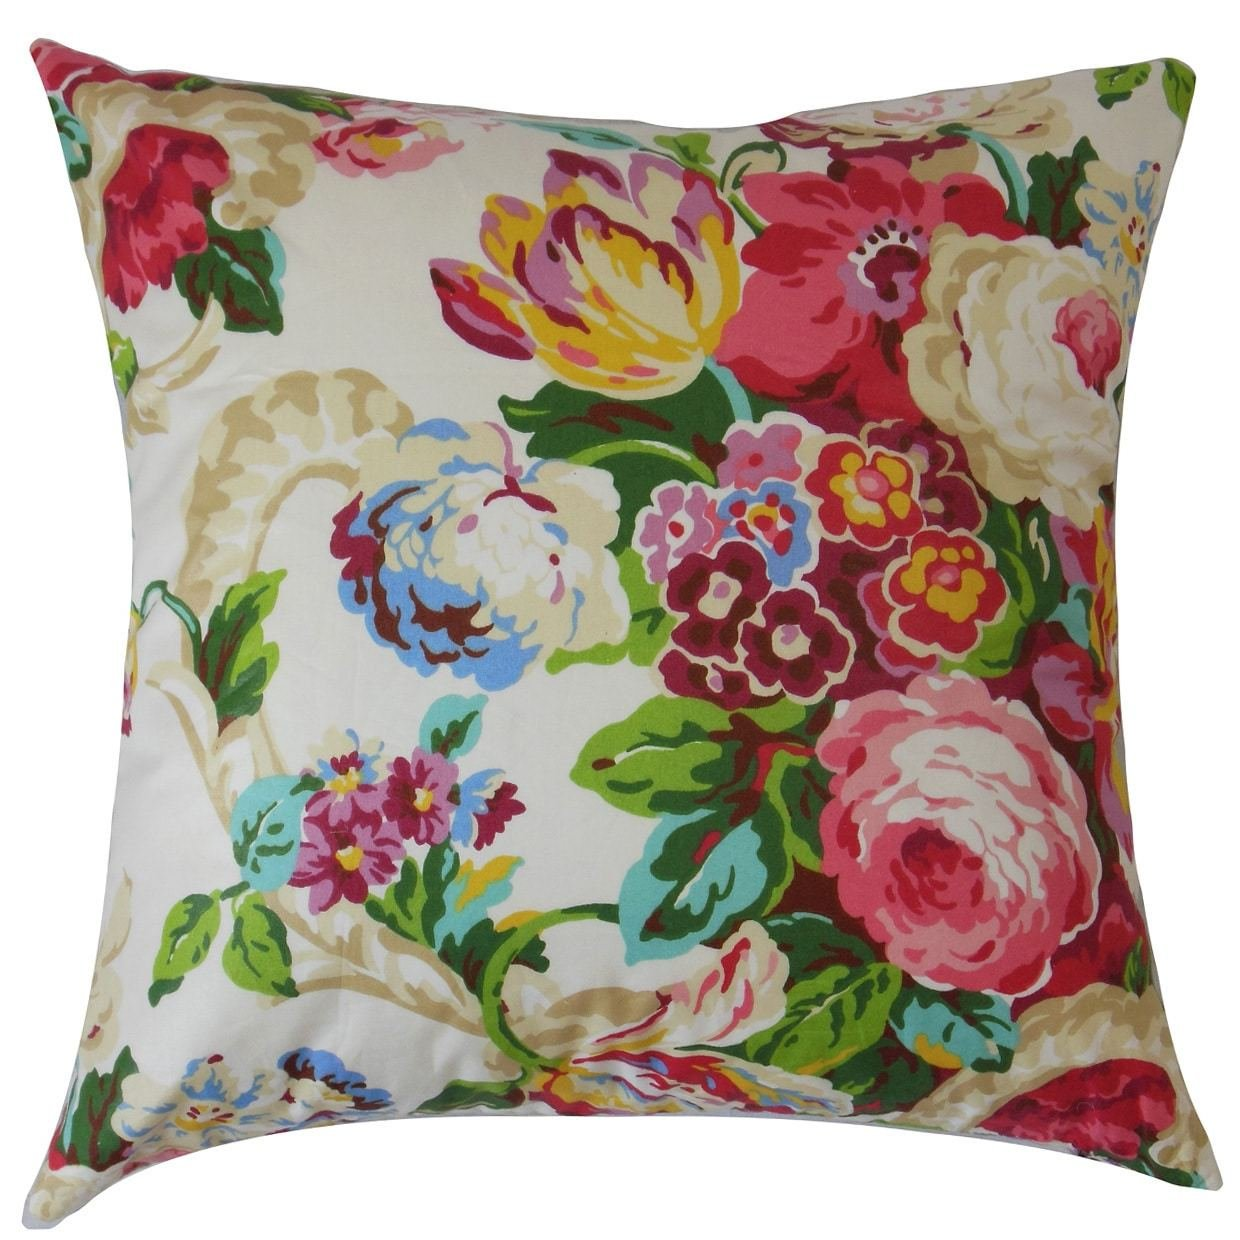 1 Piece Multi Floral Pattern Pillow Sham Queen Size, Beautiful Whimsical Colorful Garden Flowers Print, Spring-Inspired Theme Pillow Covers, Bohemian Style, Vibrant Colors, Extra Soft & Comfy, Cotton